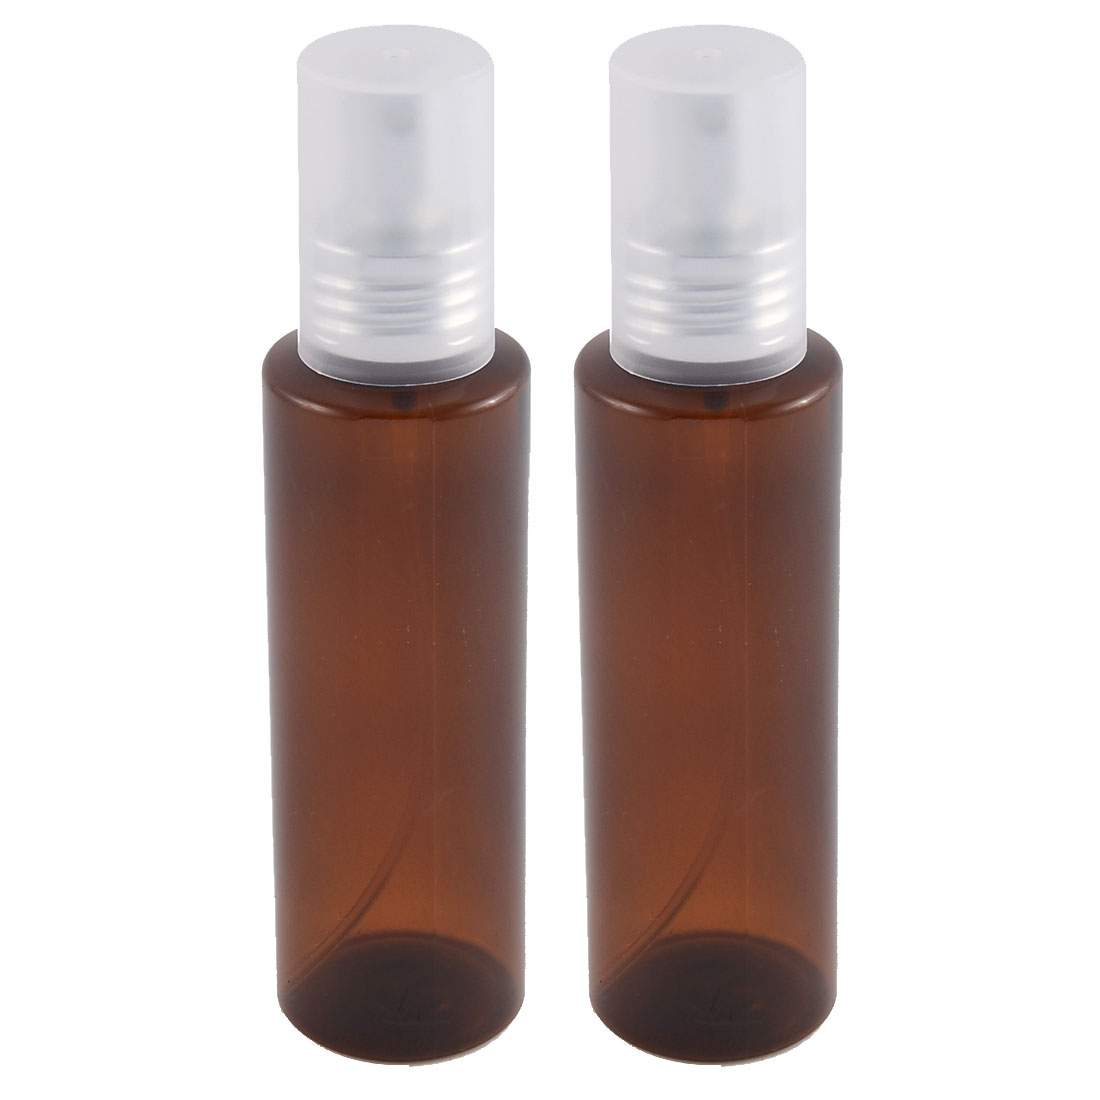 Traveling Plastic Shampoo Cosmetic Emulsion Press Pump Spray Bottle Brown 100ml 2pcs